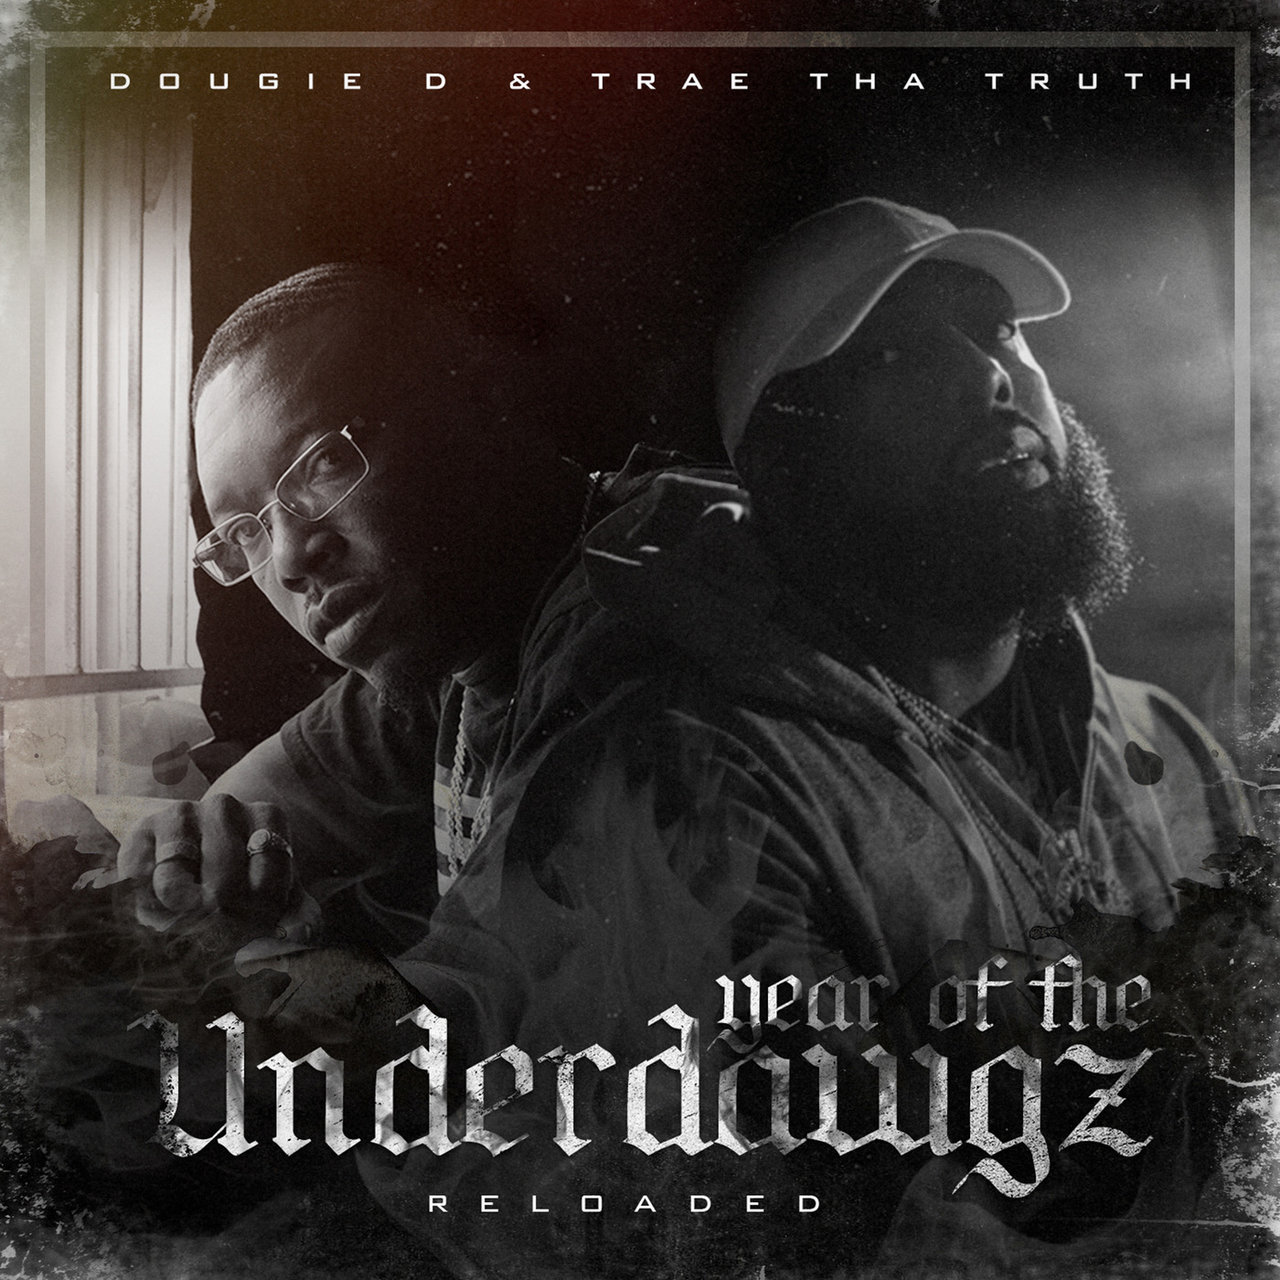 Year of the Underdawgz Reloaded